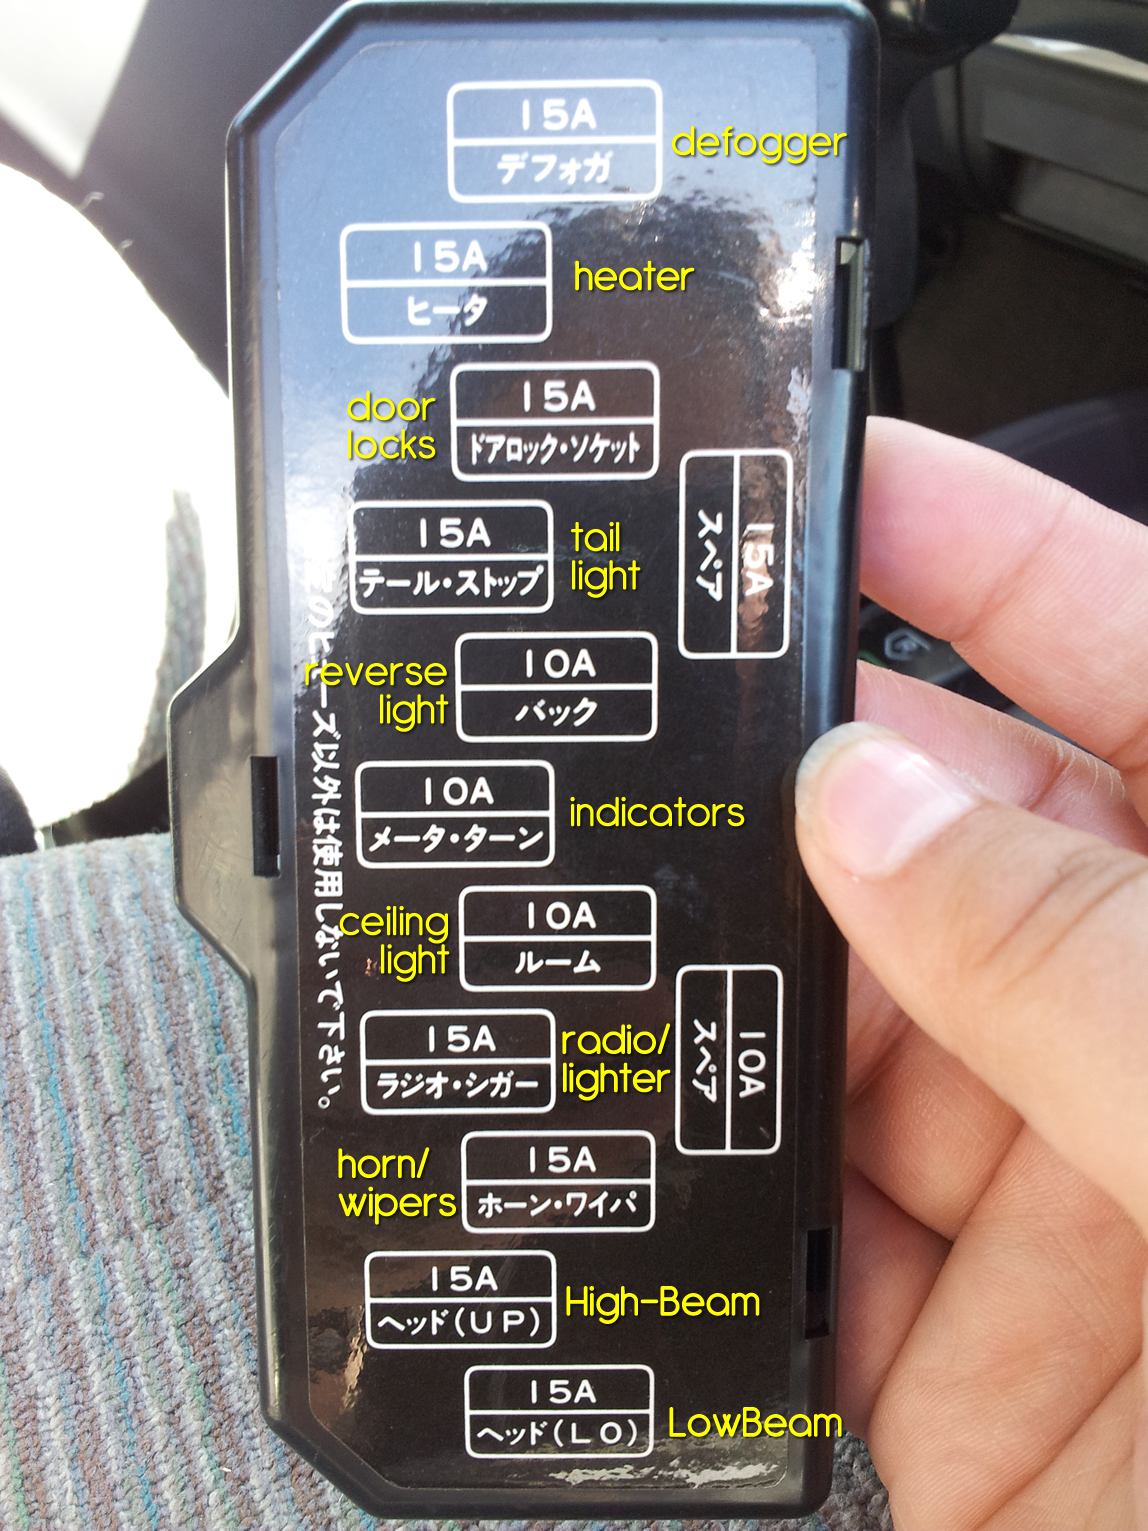 ... fuses omgsrslystfu fuse diagram for mitsubishi pajero jnr mitsubishi  pajero fuse box diagram location at cita